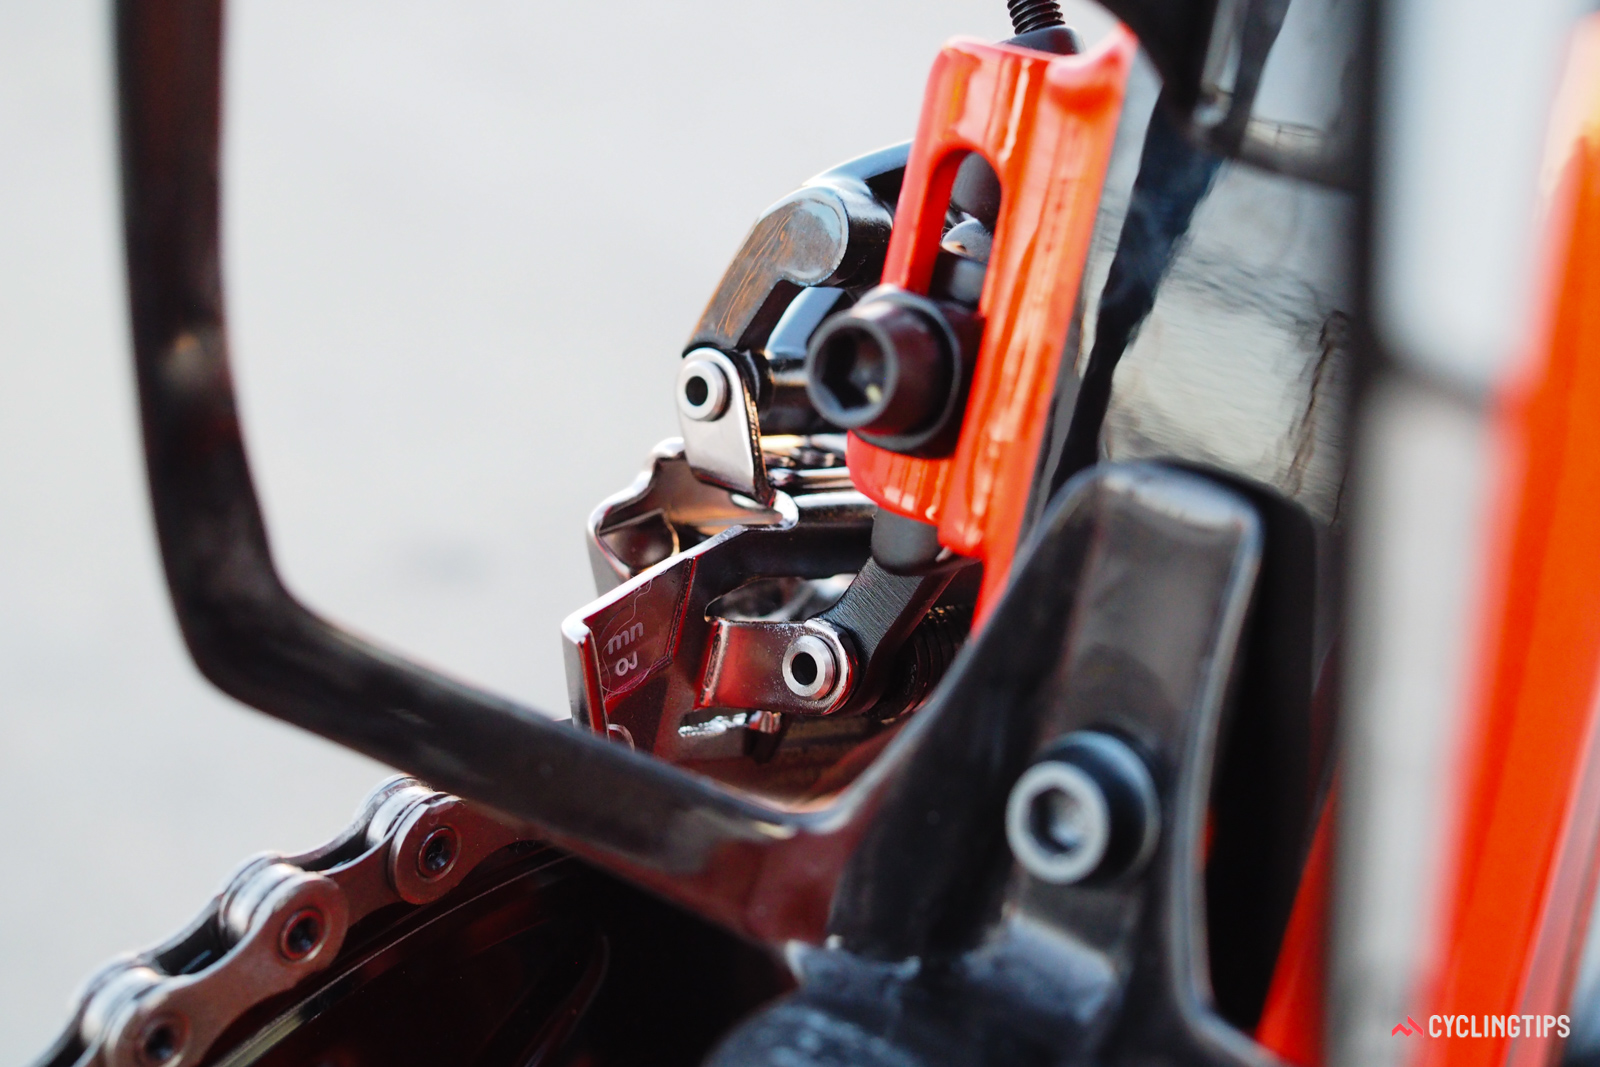 Many of the linkage arms are aluminum on the new Shimano Dura-Ace 9100 front derailleur, but the cage is steel for long-term durability.